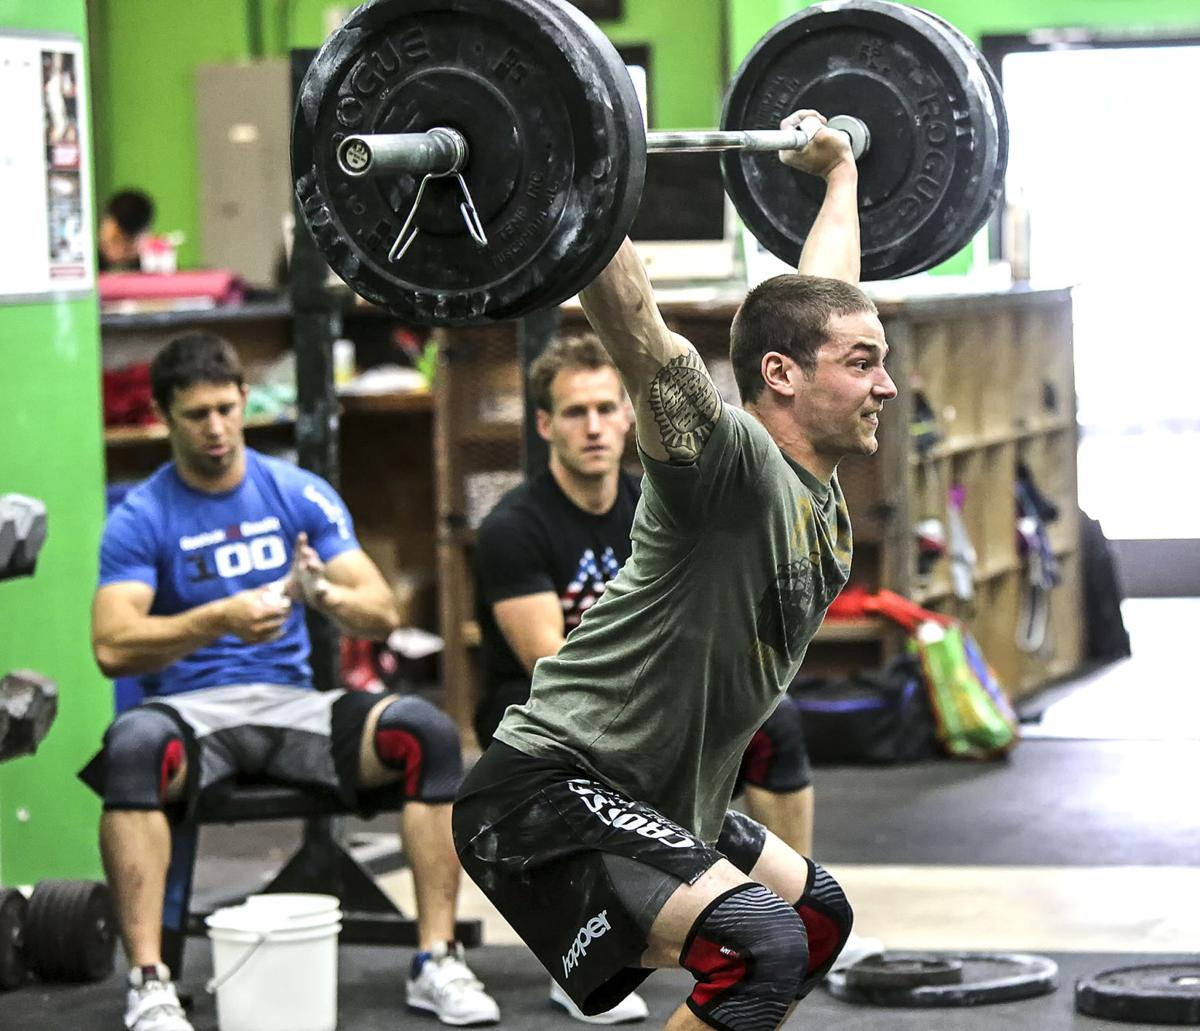 local man works his way from crossfit newcomer to regional